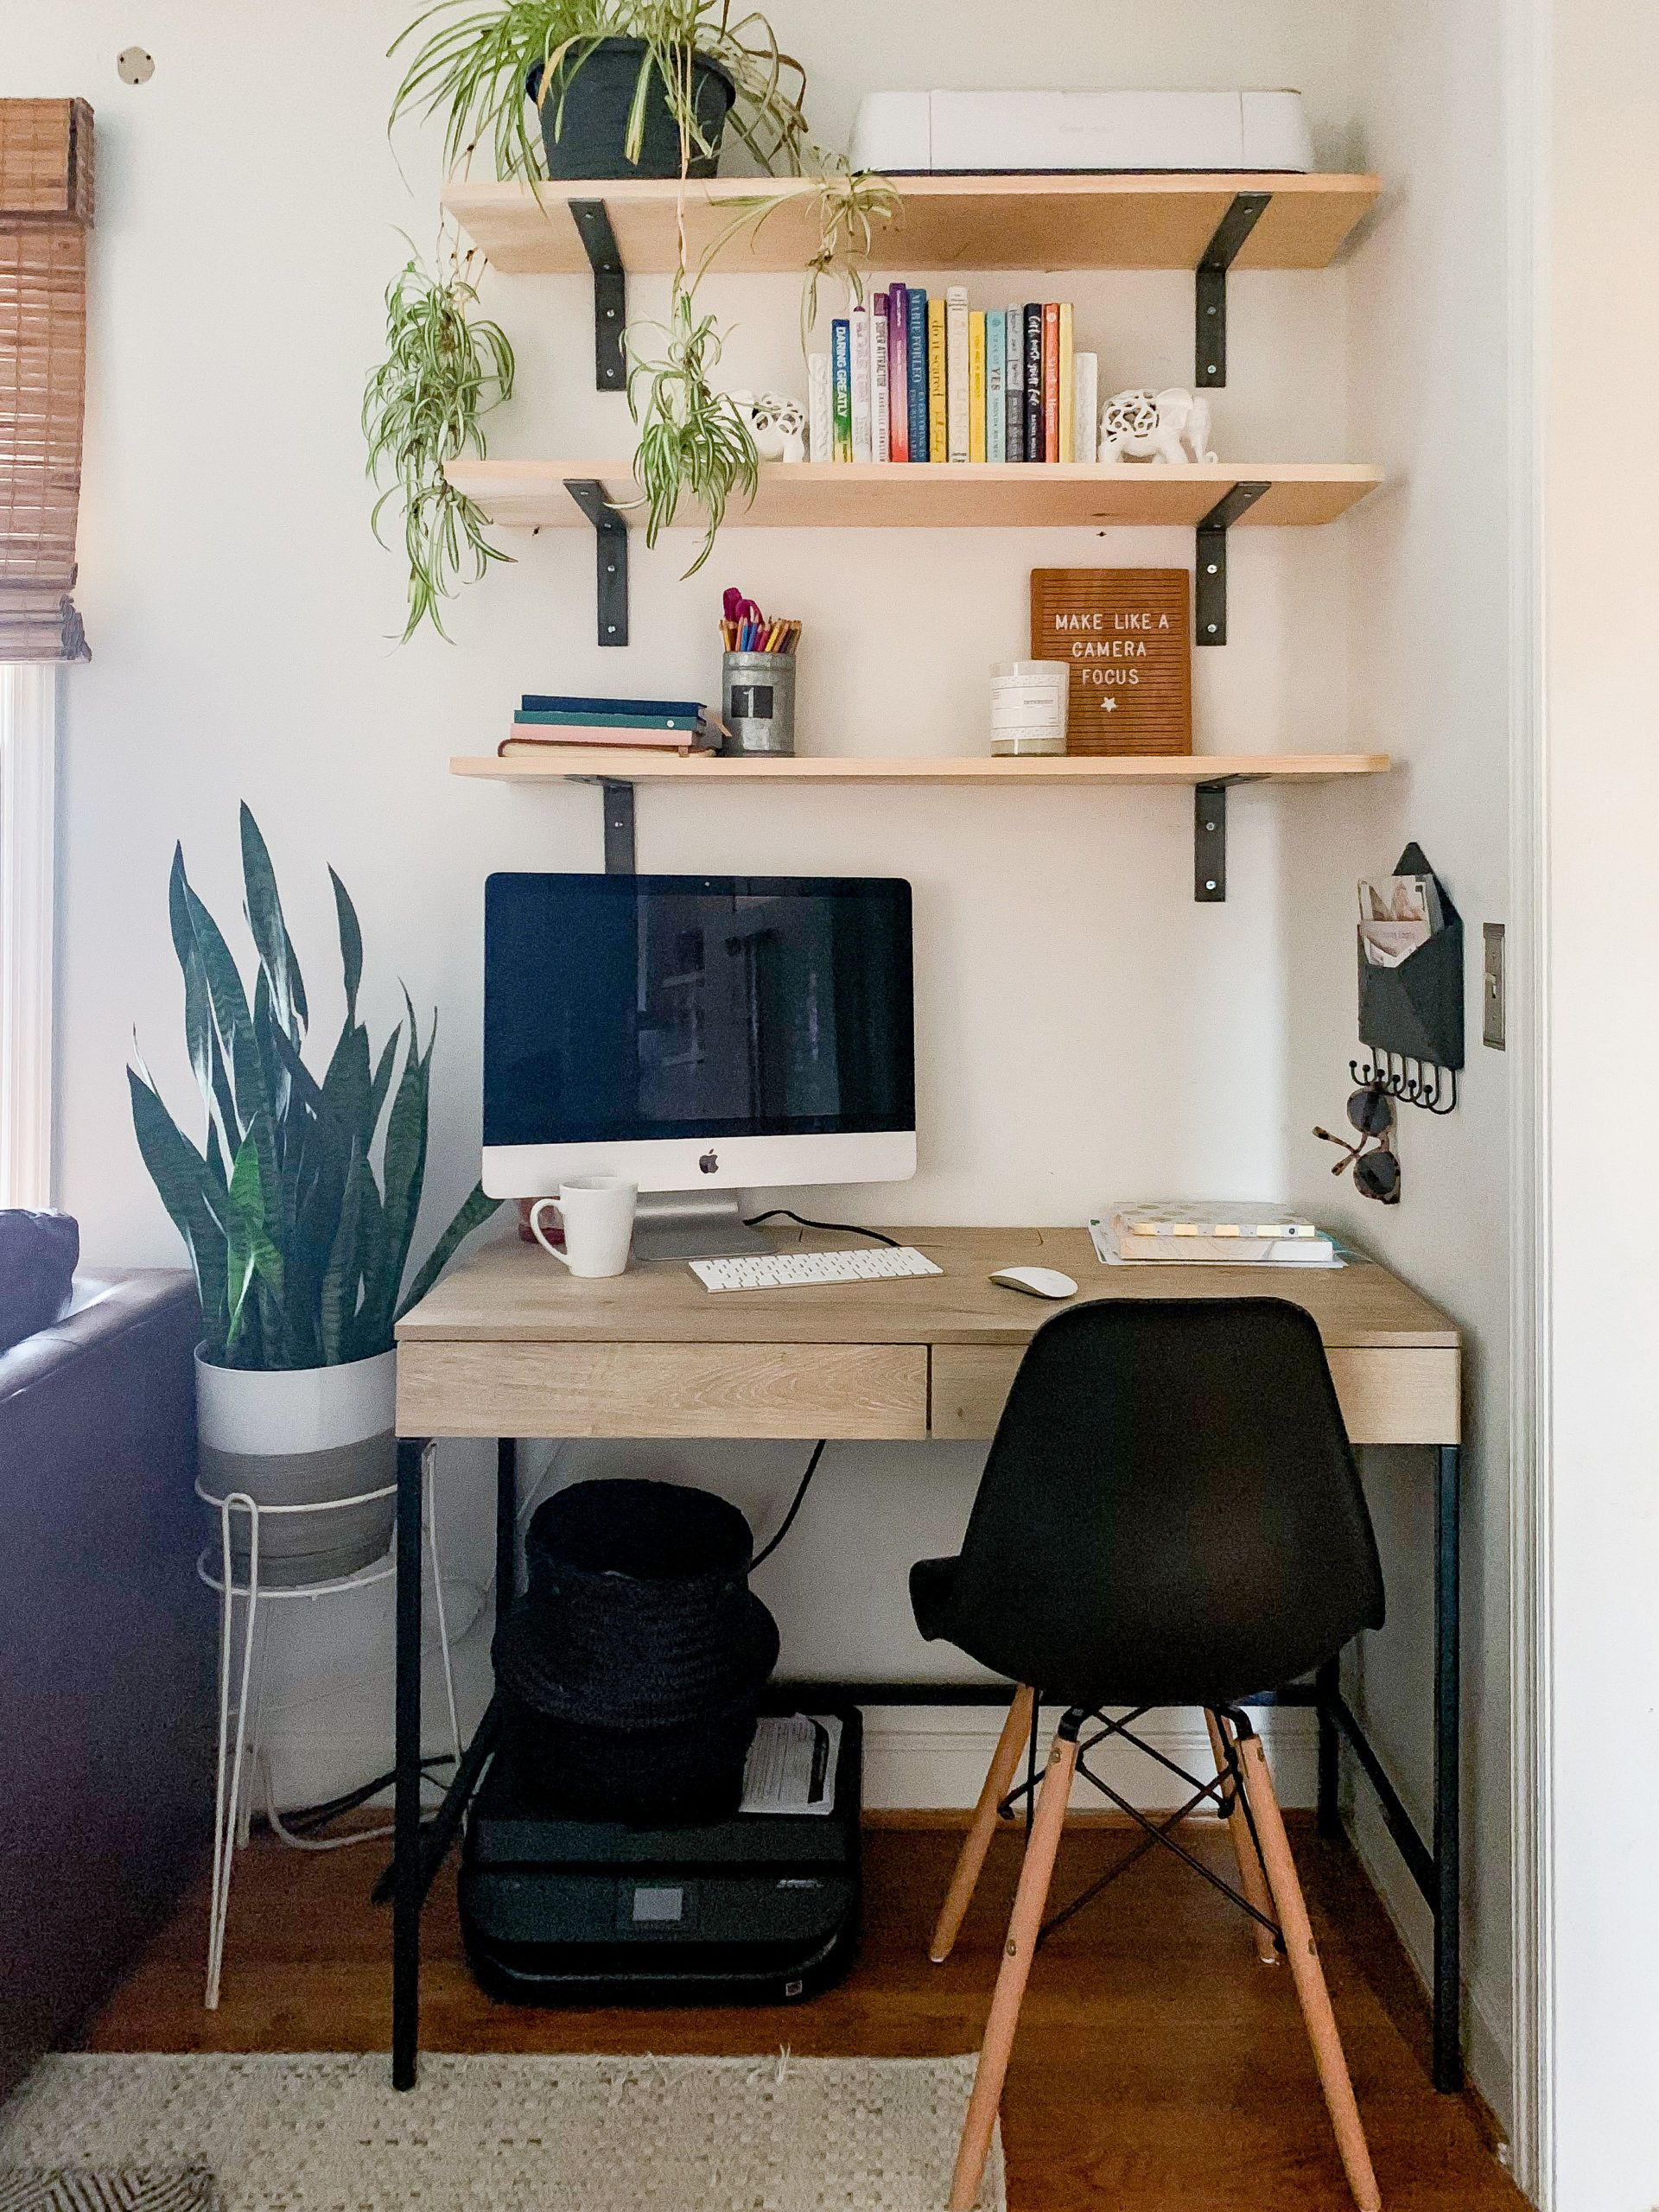 How To Create A Home Office In A Living Room Diy Shelves Paint Selections Living Room Office Combo Desk In Living Room Office Room Decor